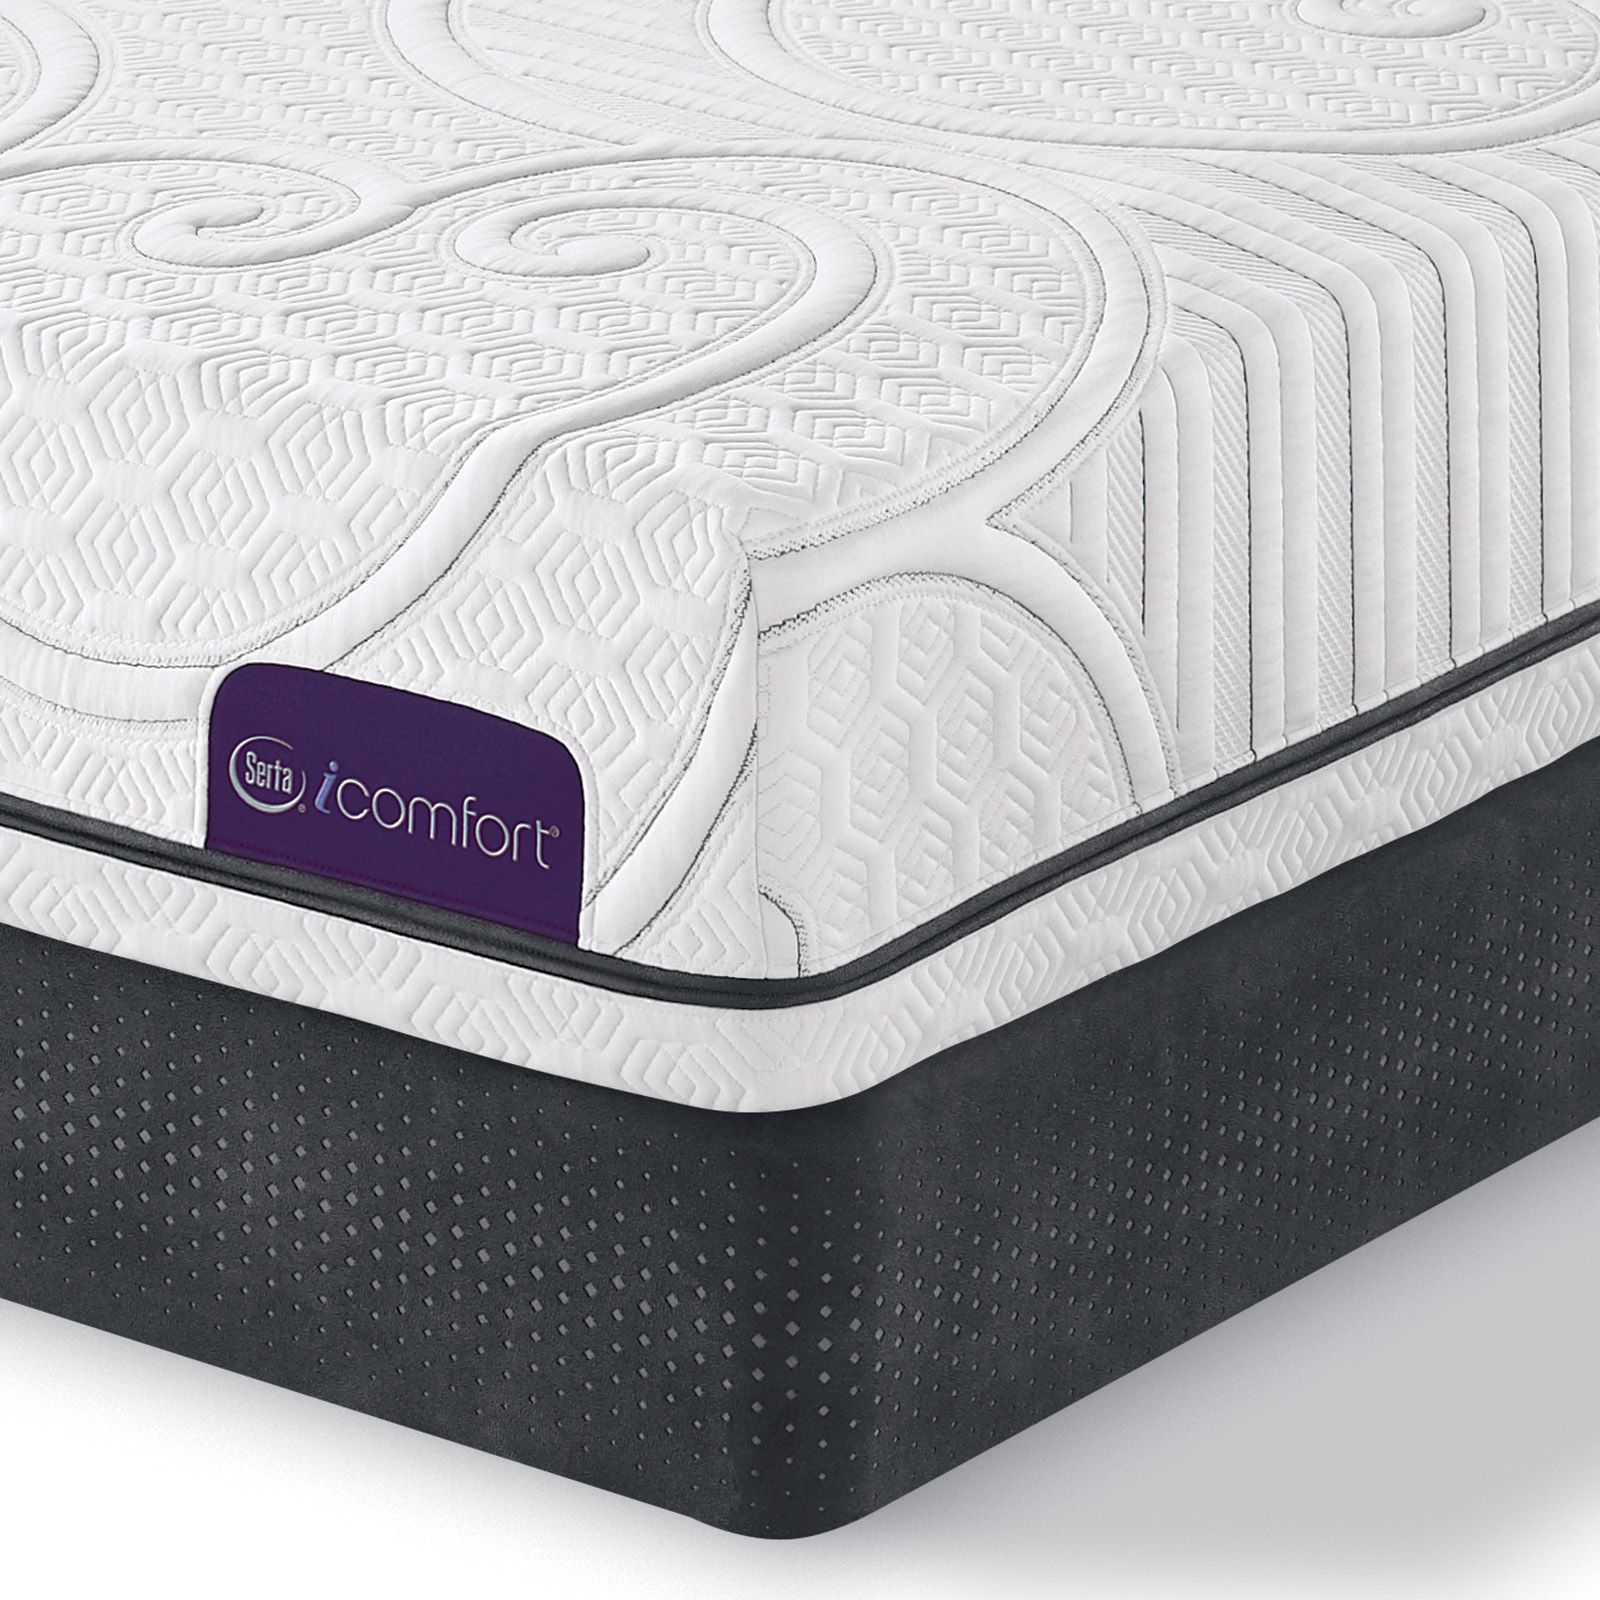 Serta Icomfort Serta Guidance Plush Tight Top Queen Mattress Off